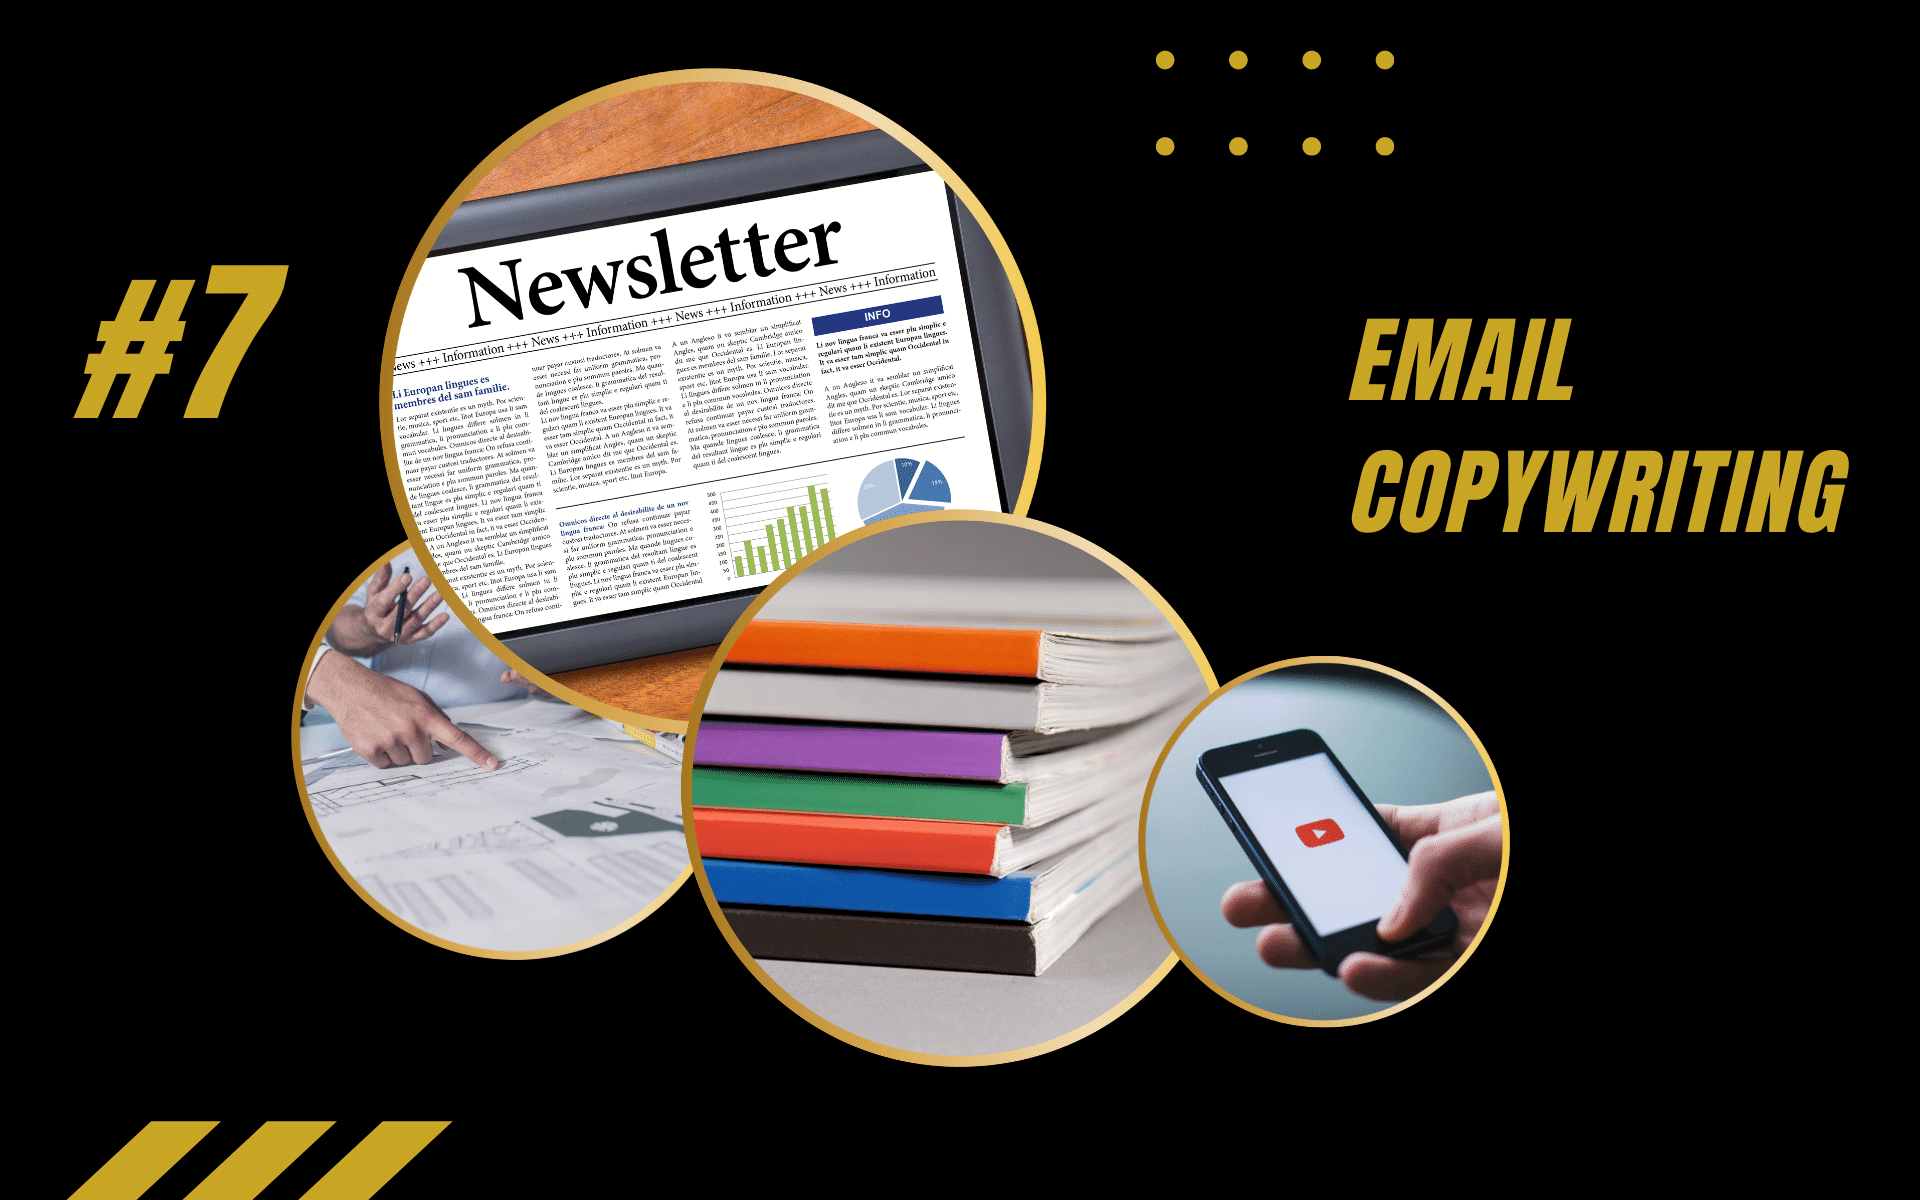 Email Copywriting Content Writing 101